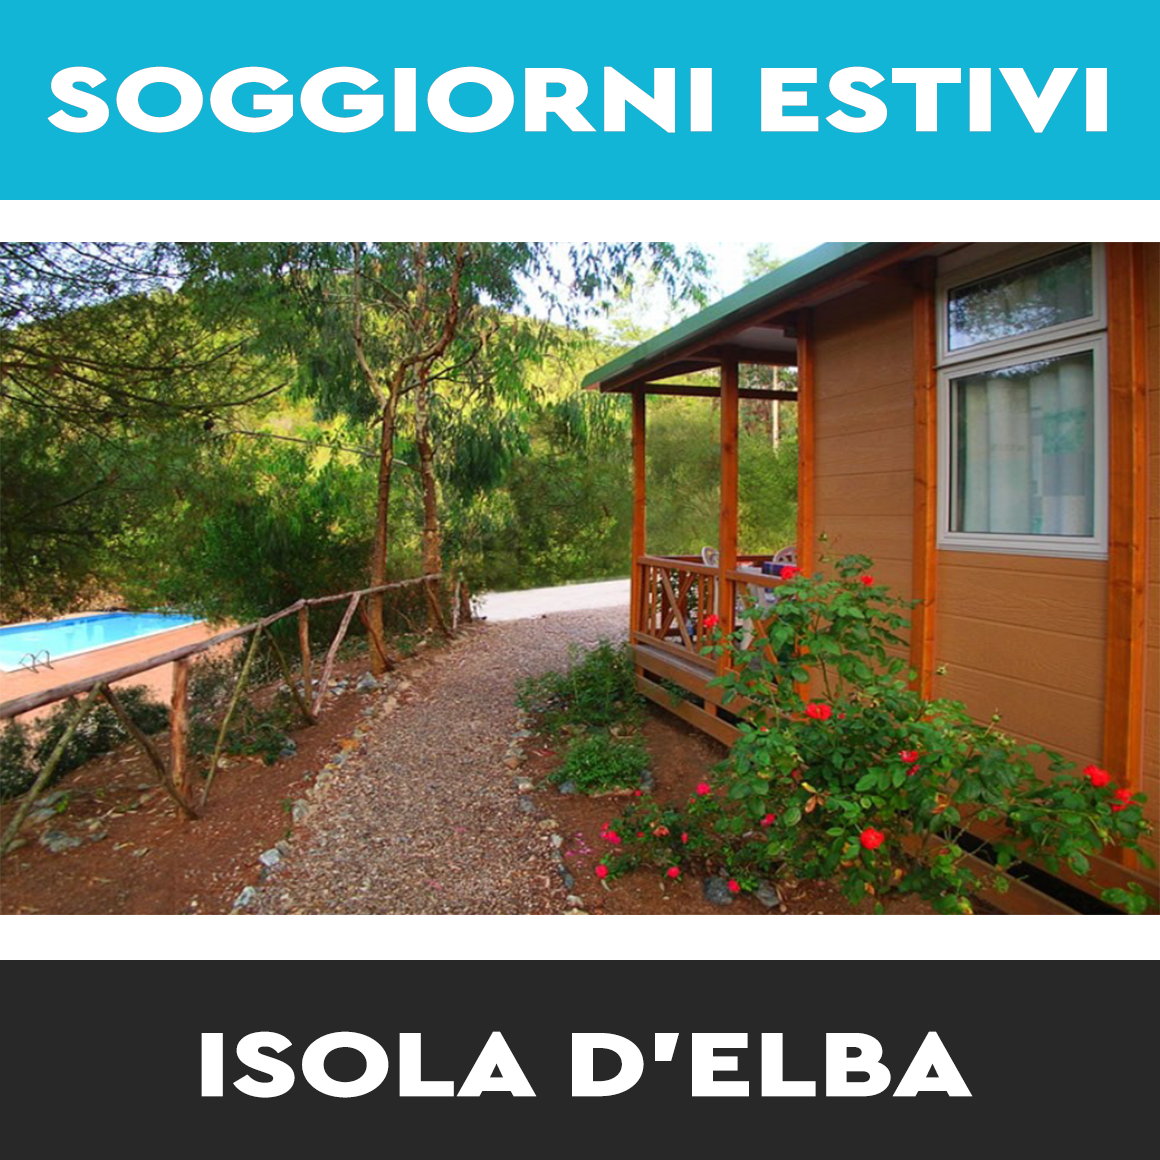 https://www.coopcolori.it/sites/default/files/field/image/soggiorno_isola_elba_colori_0.png